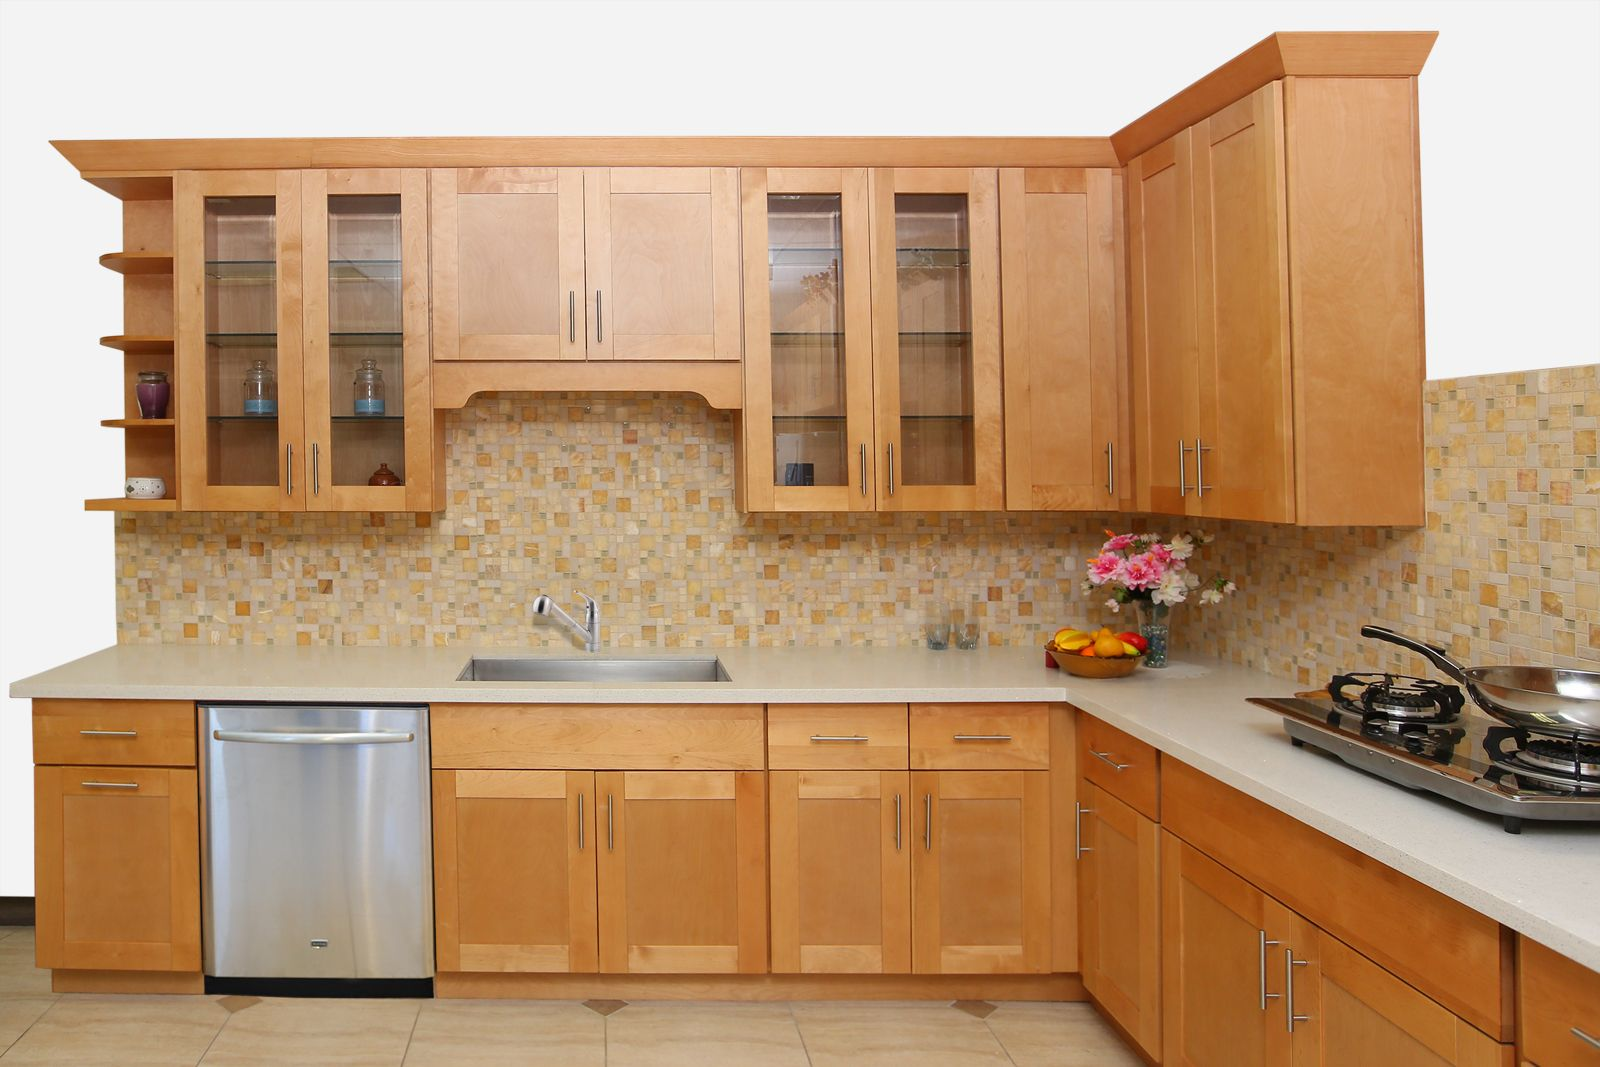 Honey Shaker Maple Cabinets Ready To Assemble Kitchen Cabinets Shaker Style Kitchen Cabinets Shaker Kitchen Cabinets Kitchen Cabinet Styles